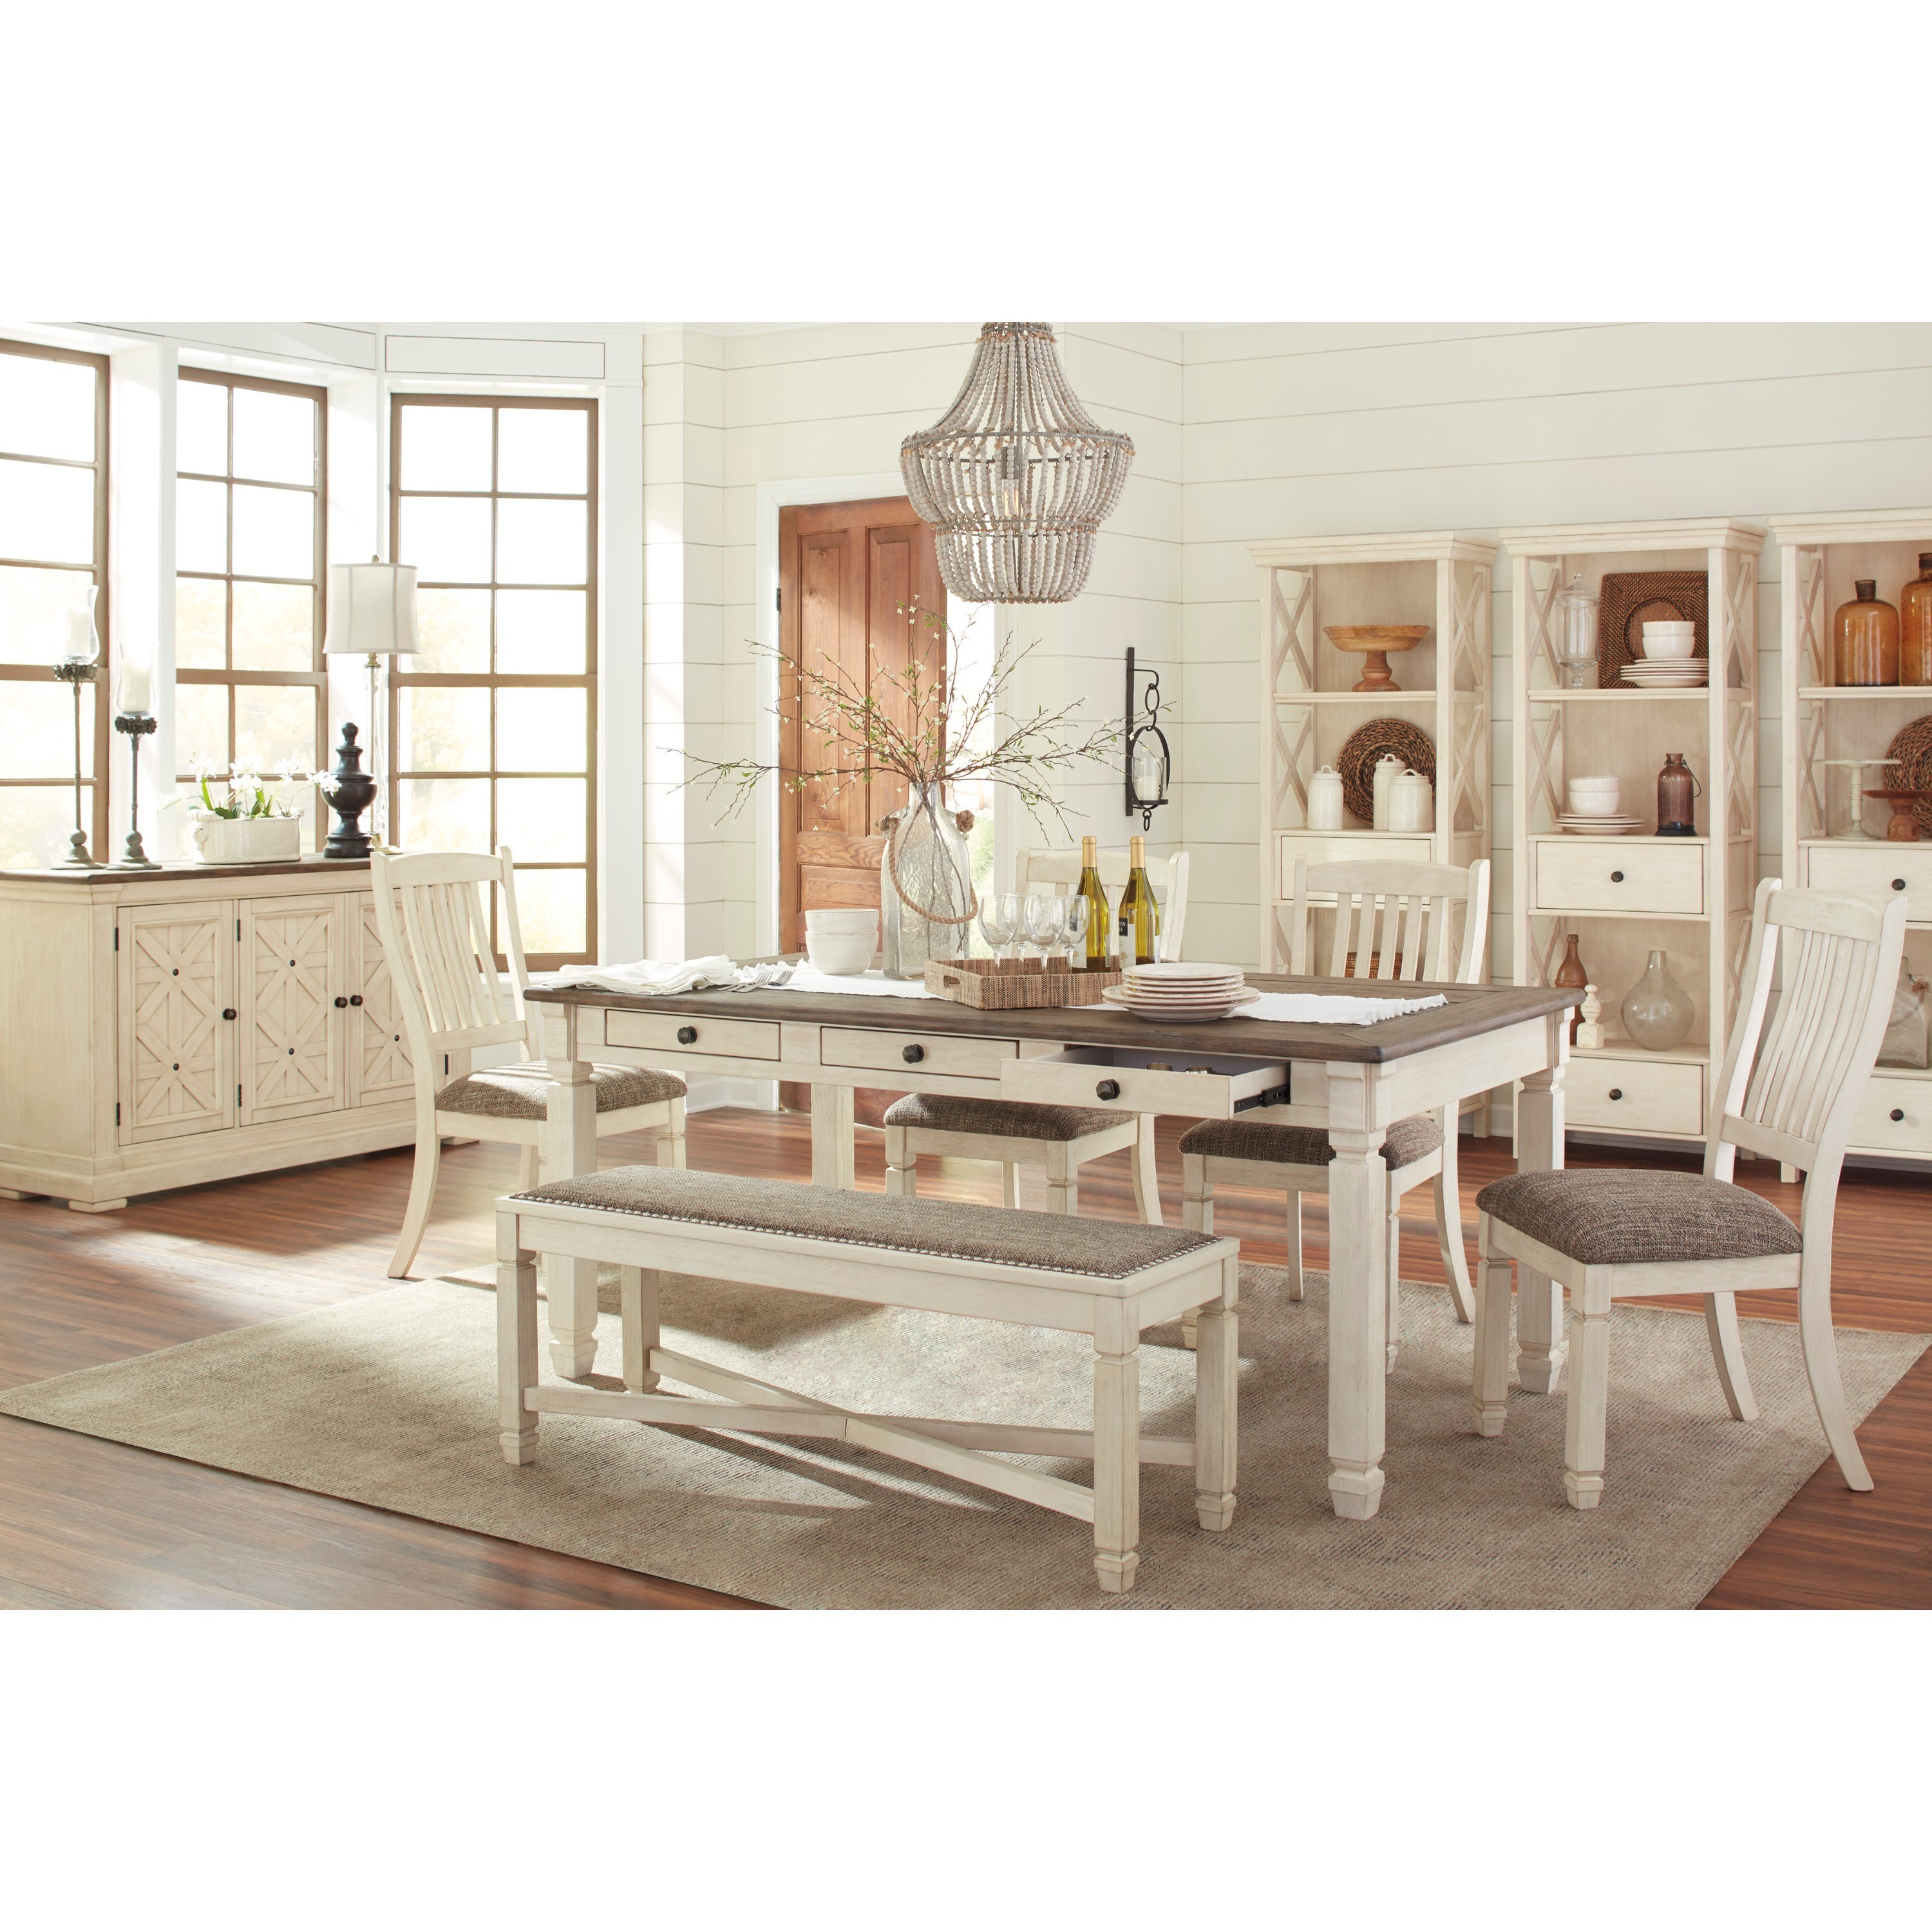 Signature Design by Ashley Bolanburg Two-tone Dining Room Table with ...